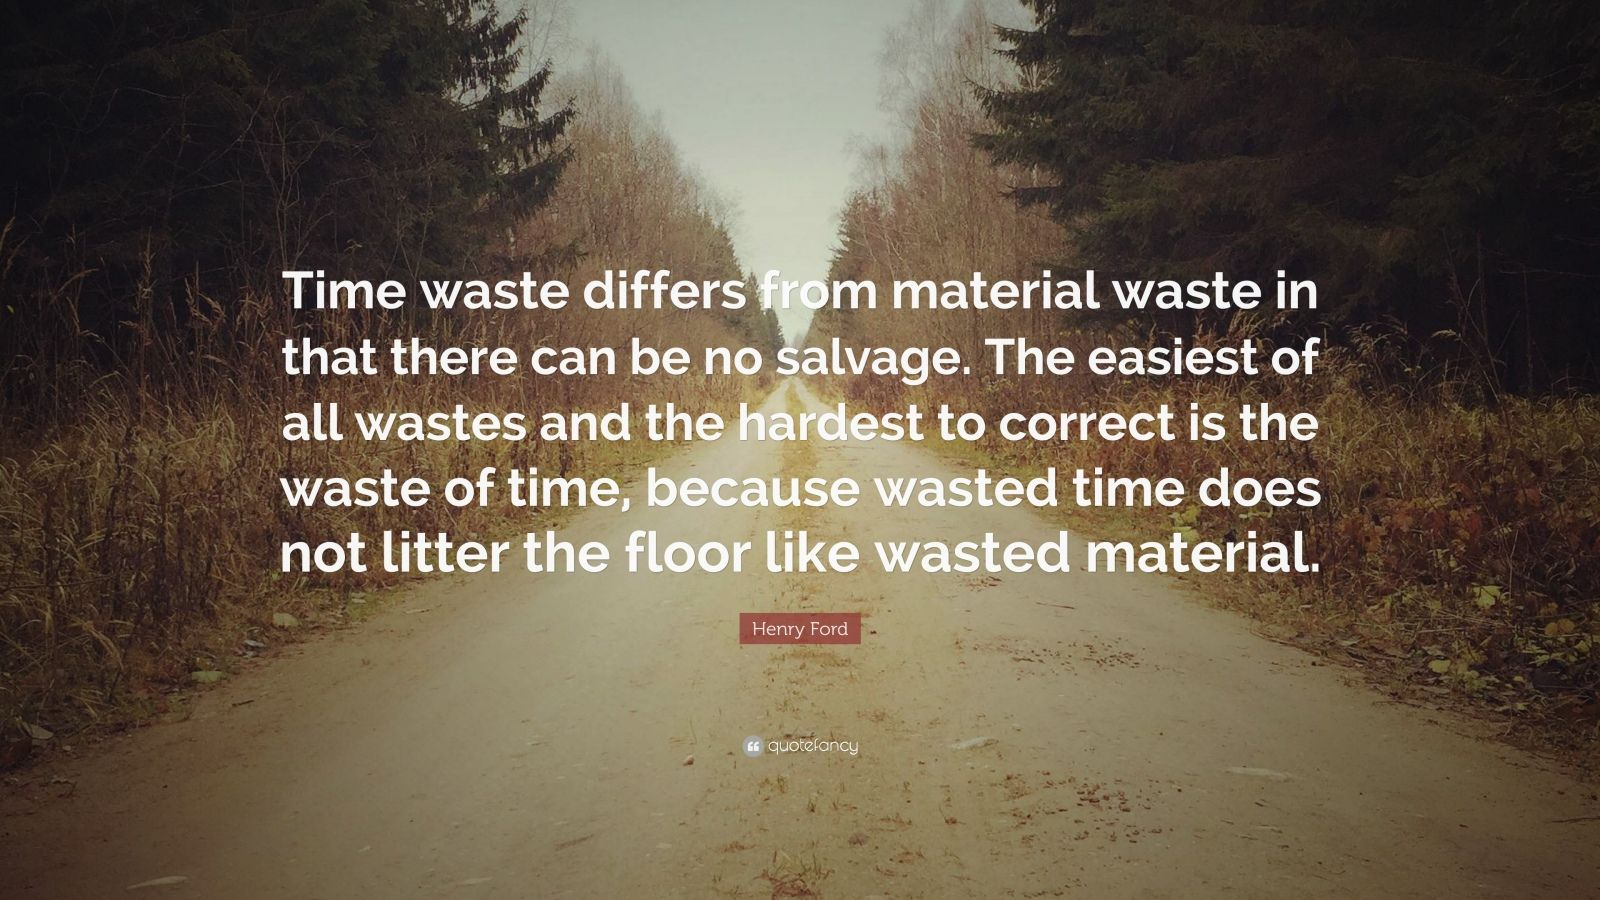 "Henry Ford Quote: ""Time waste differs from material waste in that there can be no salvage. The easiest of all wastes and the hardest to correct is the waste of time, because wasted time does not litter the floor like wasted material."""